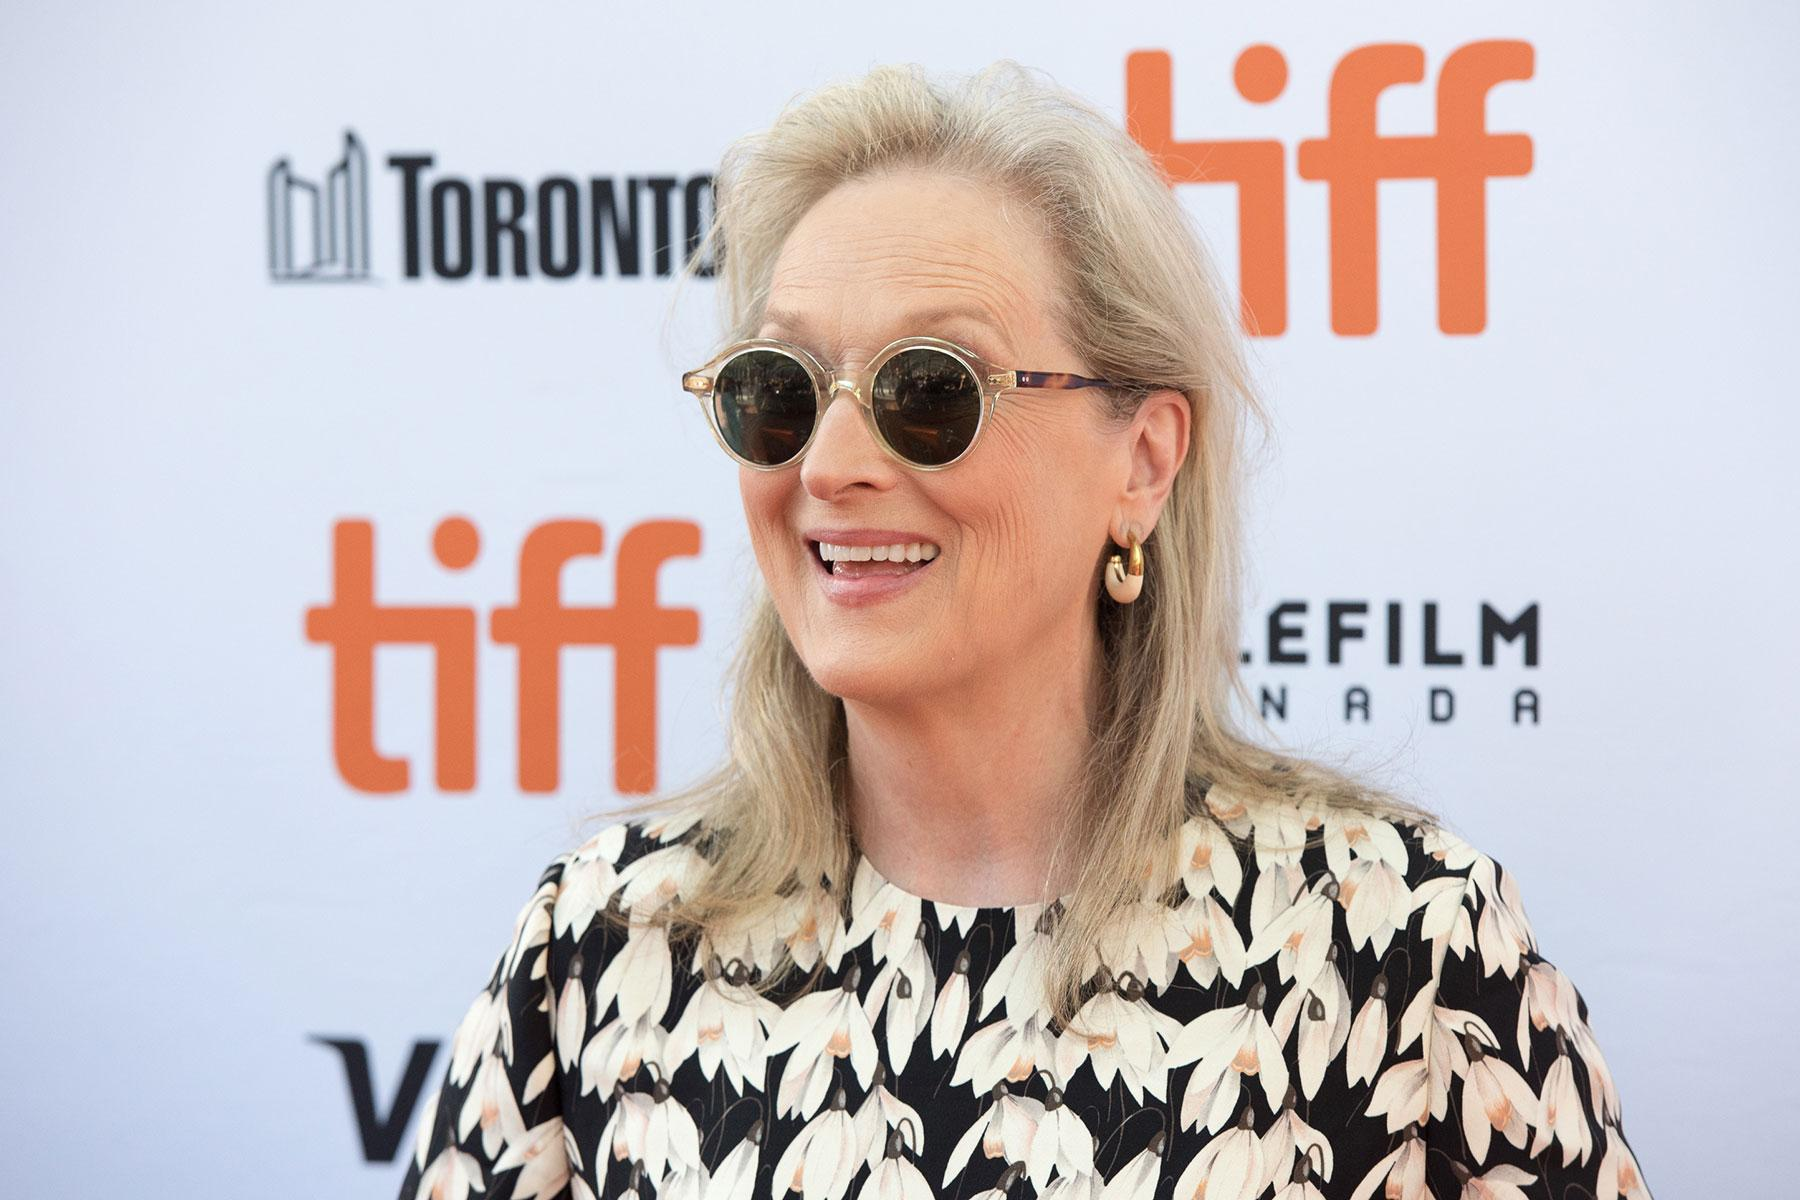 Meryl Streep to chair and attend Met Gala for the - Meryl Streep to chair and attend Met Gala for the first time